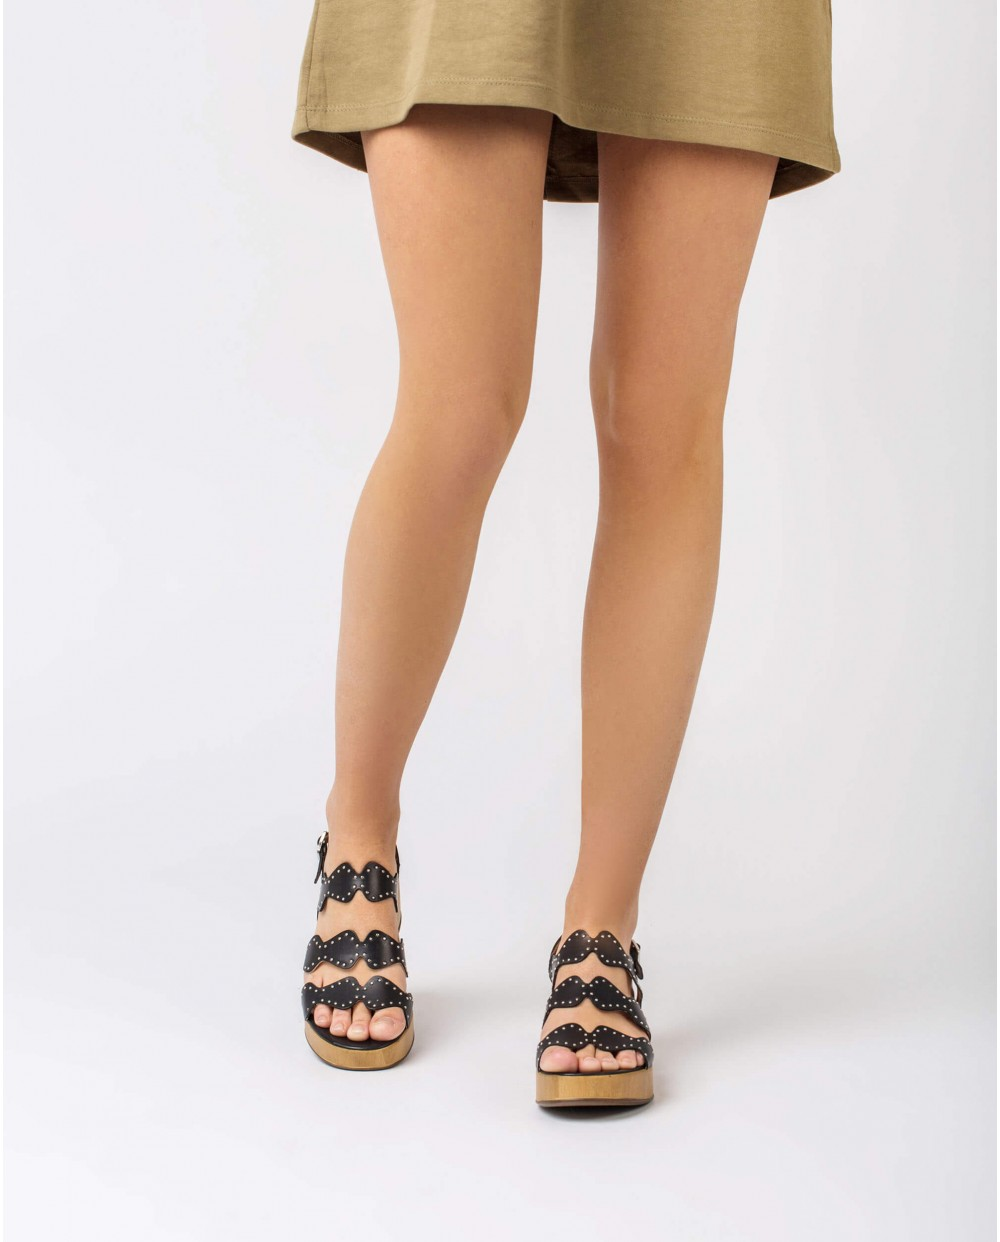 Wonders-Sandals-Sandal with metallic detail on strap